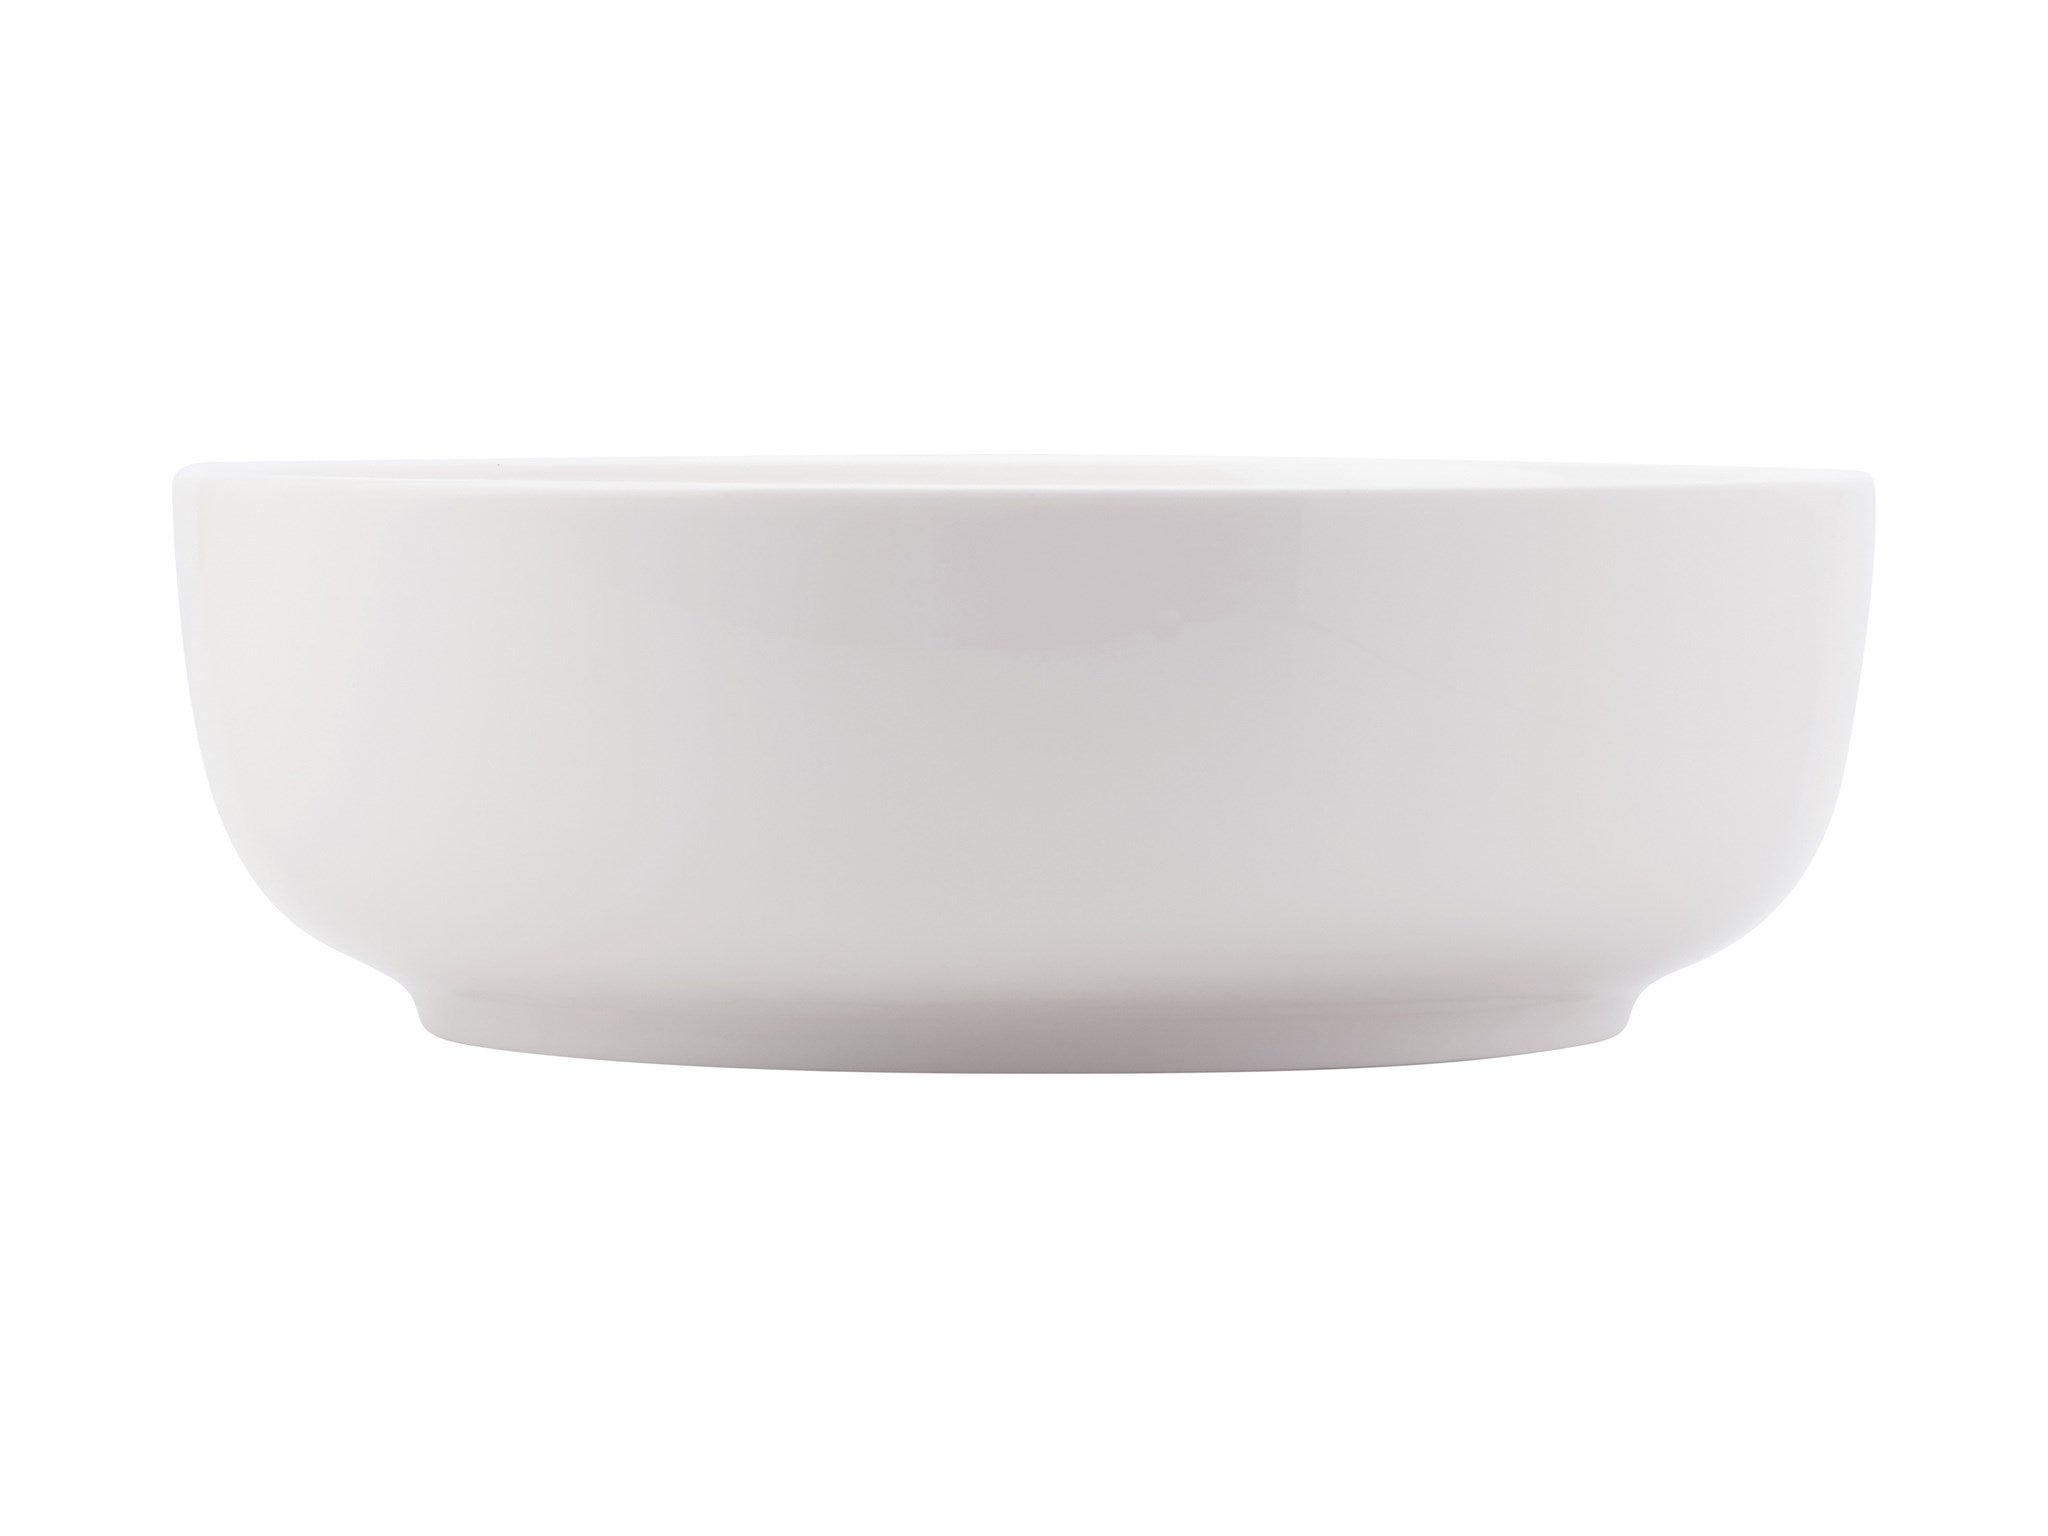 Serving Bowl | White Basics Collection